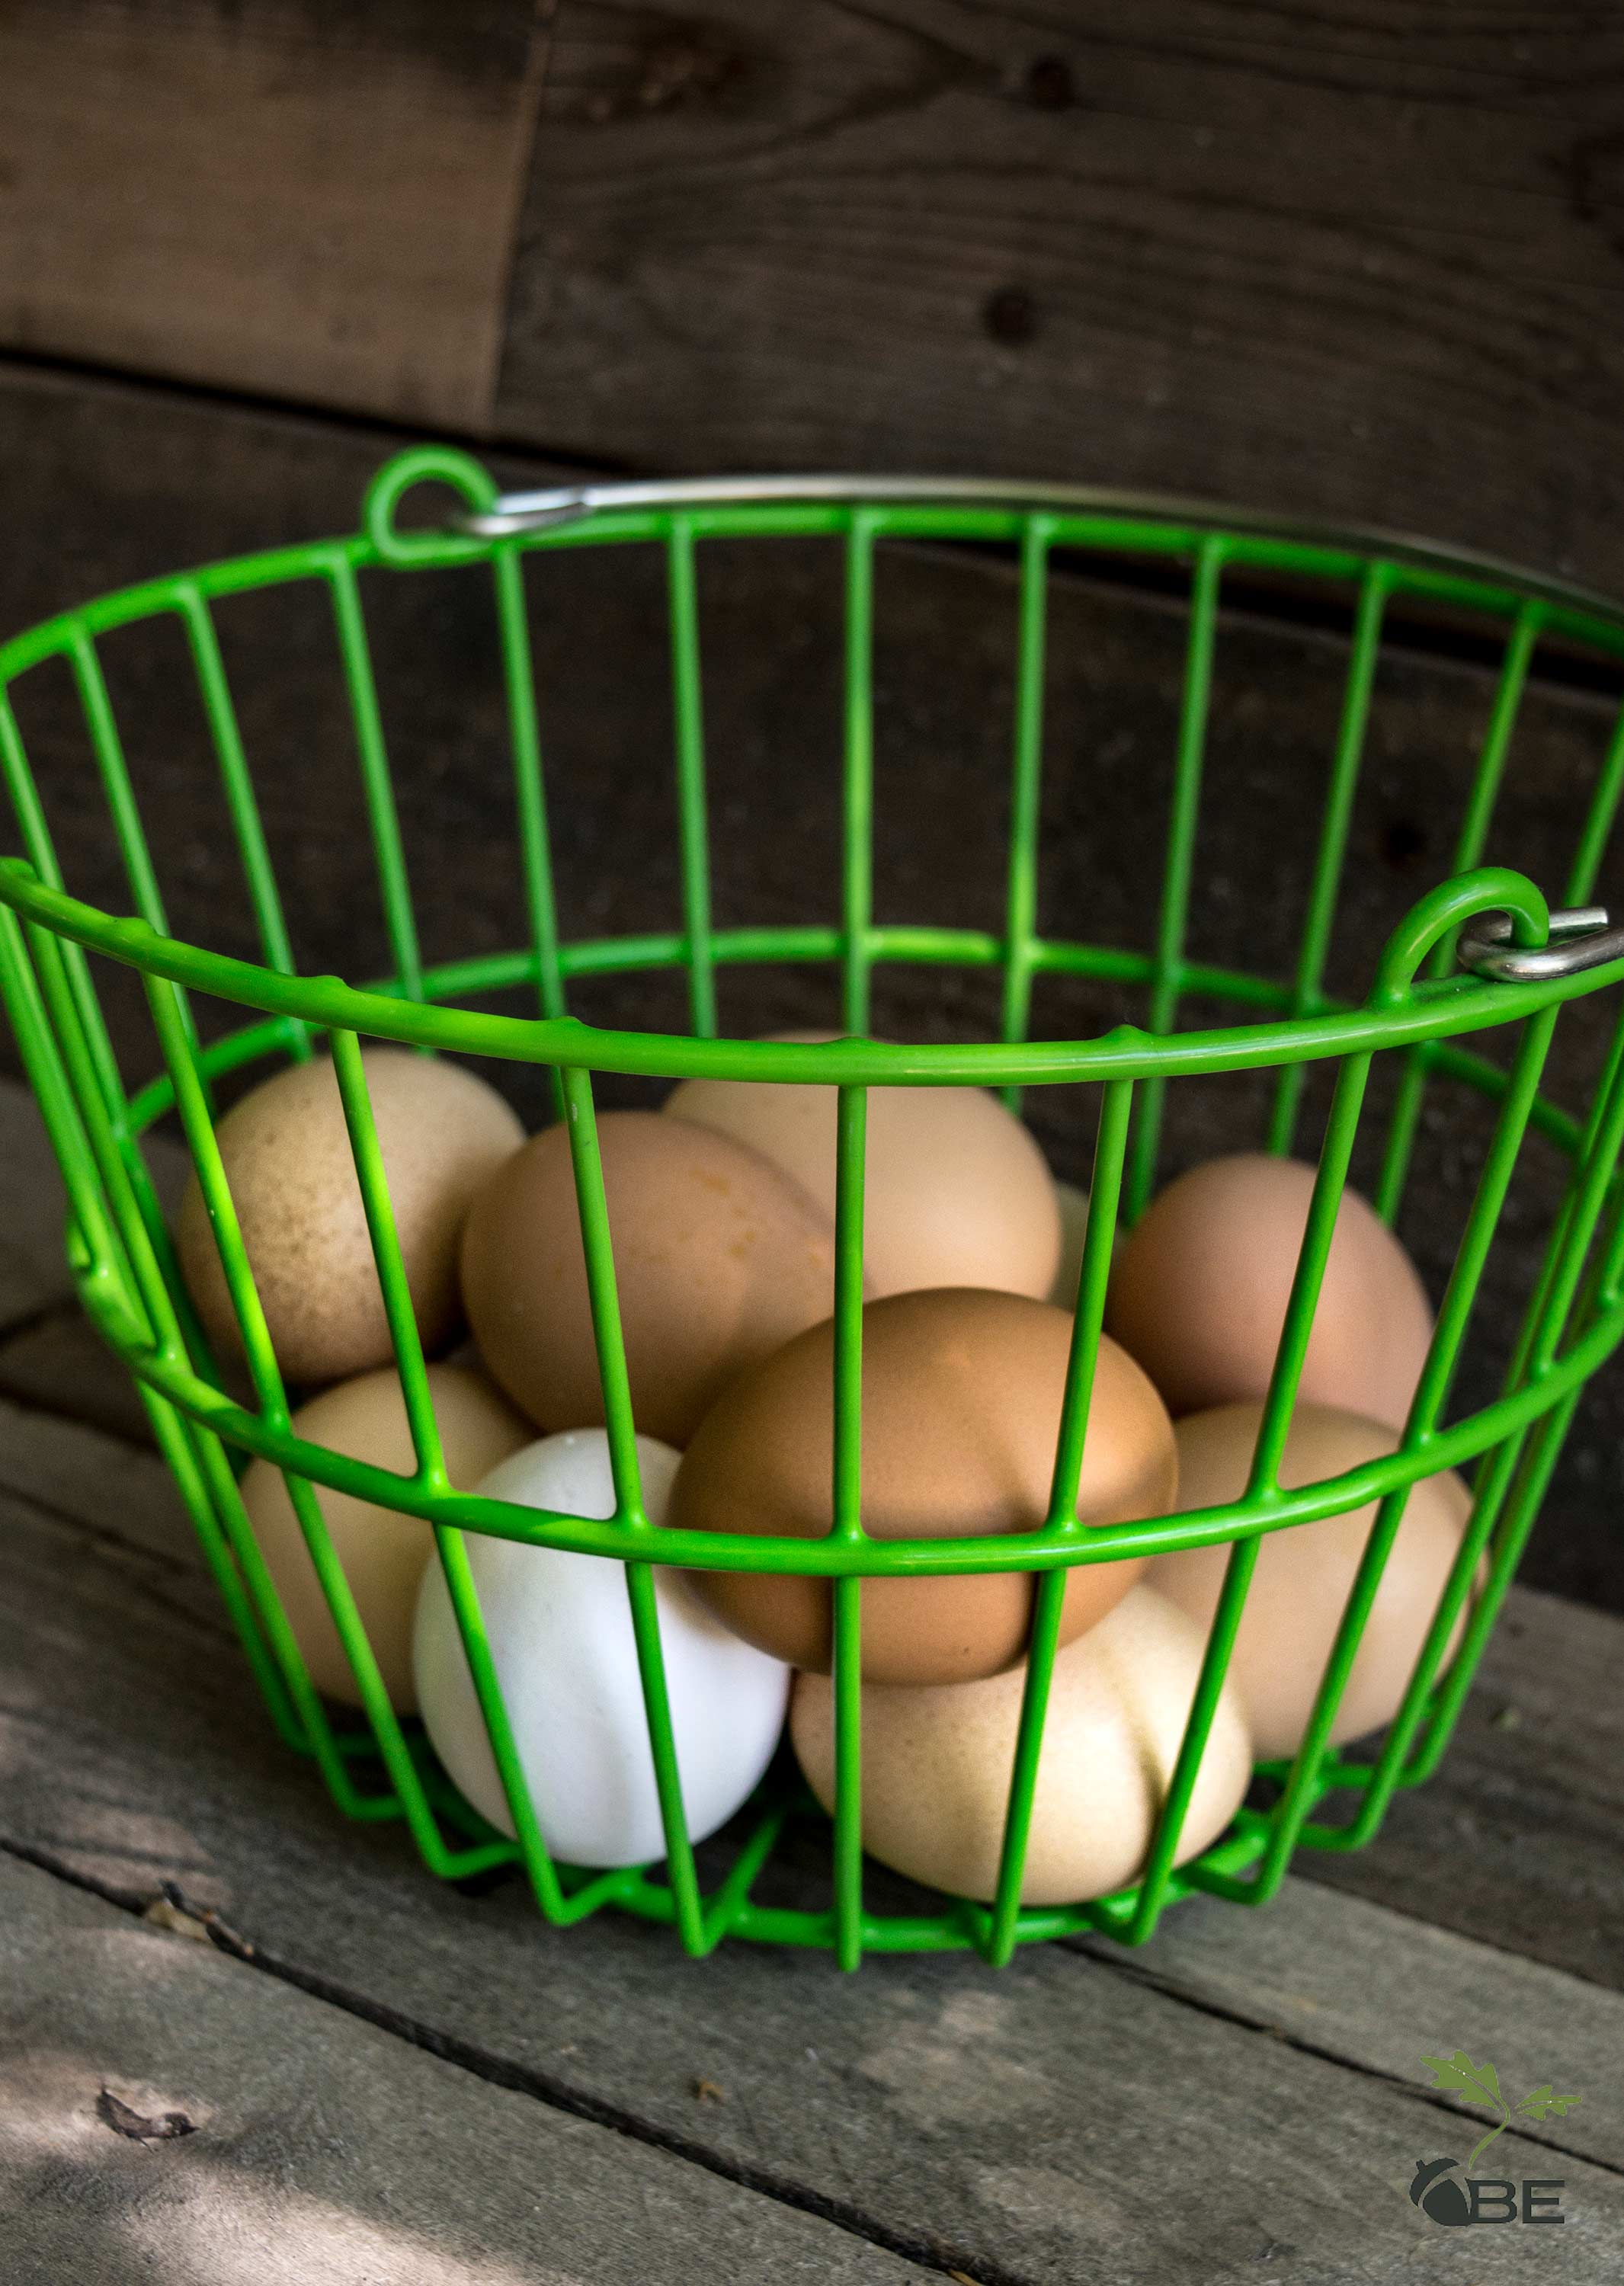 Fresh eggs in a green wire basket